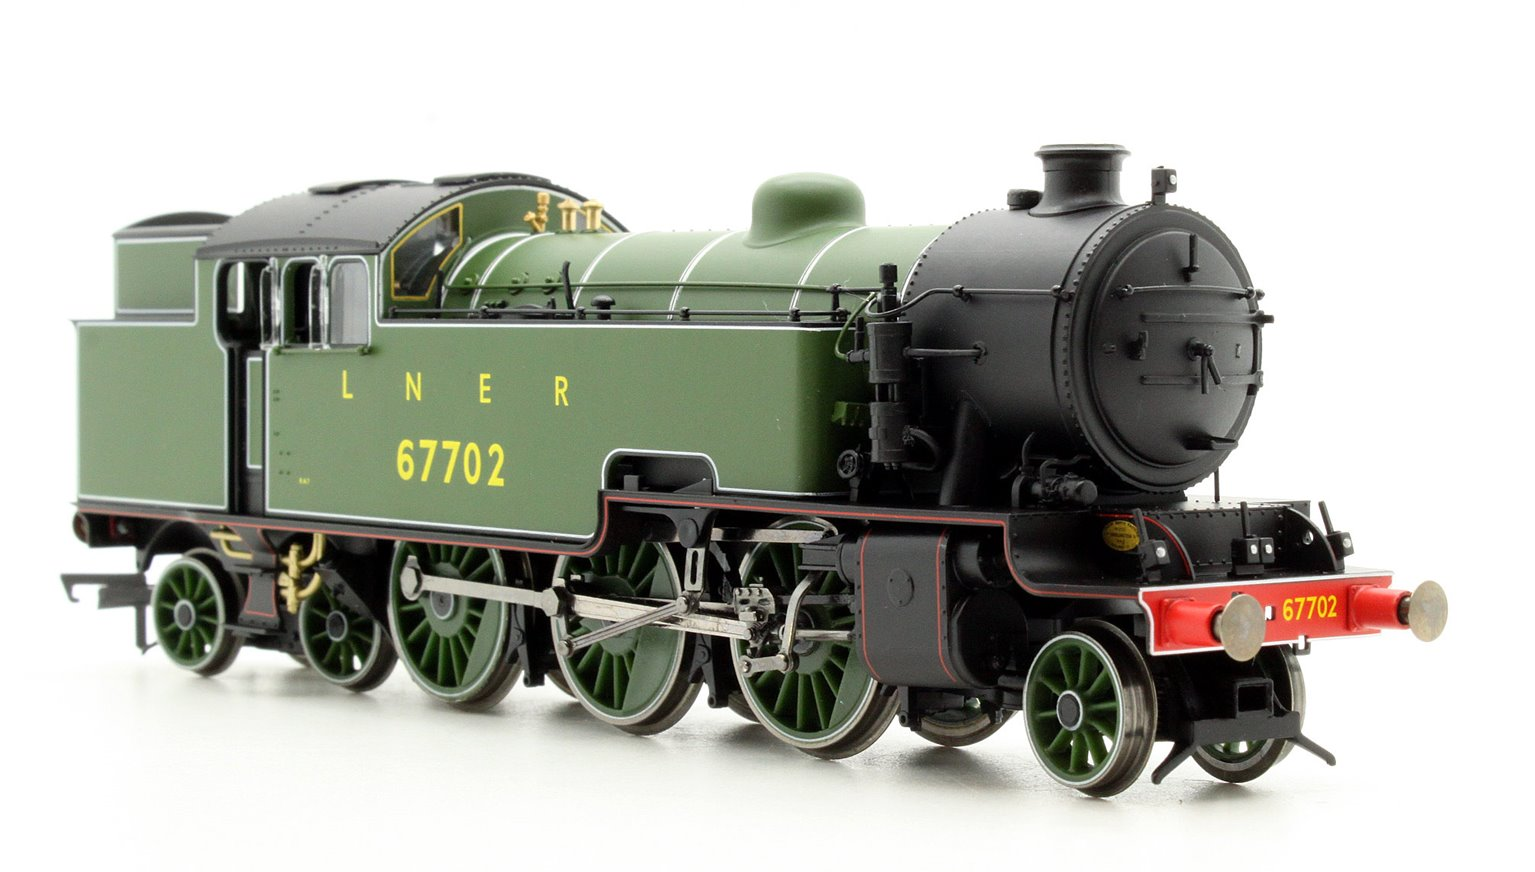 Thompson L1 Class LNER Green 2-6-4 Tank Locomotive No.67702